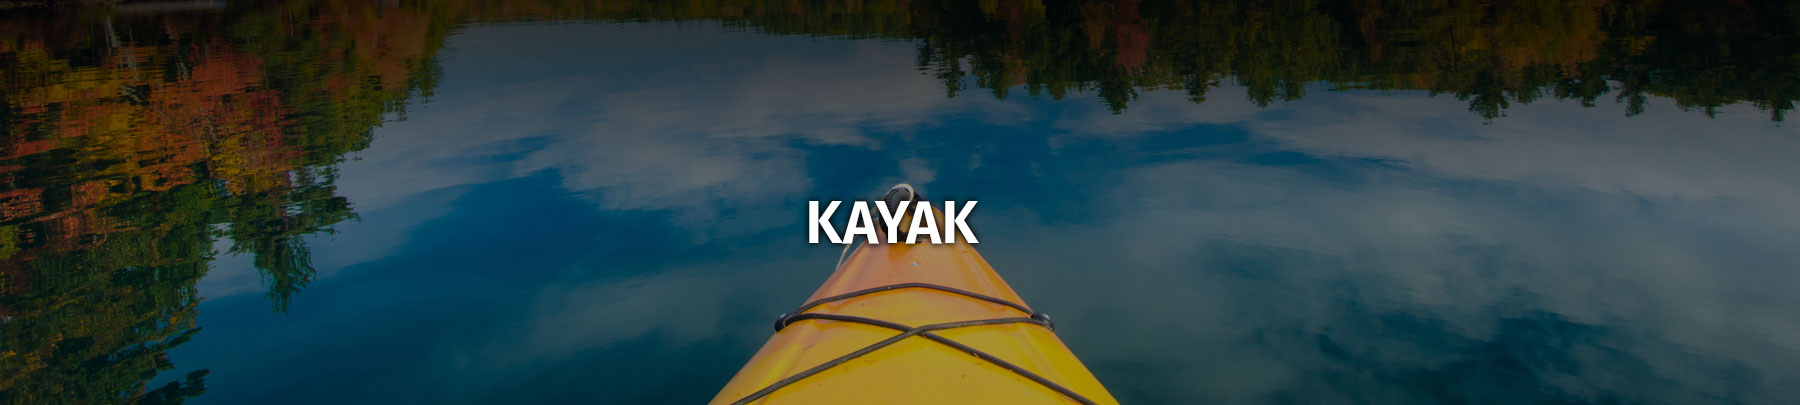 modele secondaire KAYAK